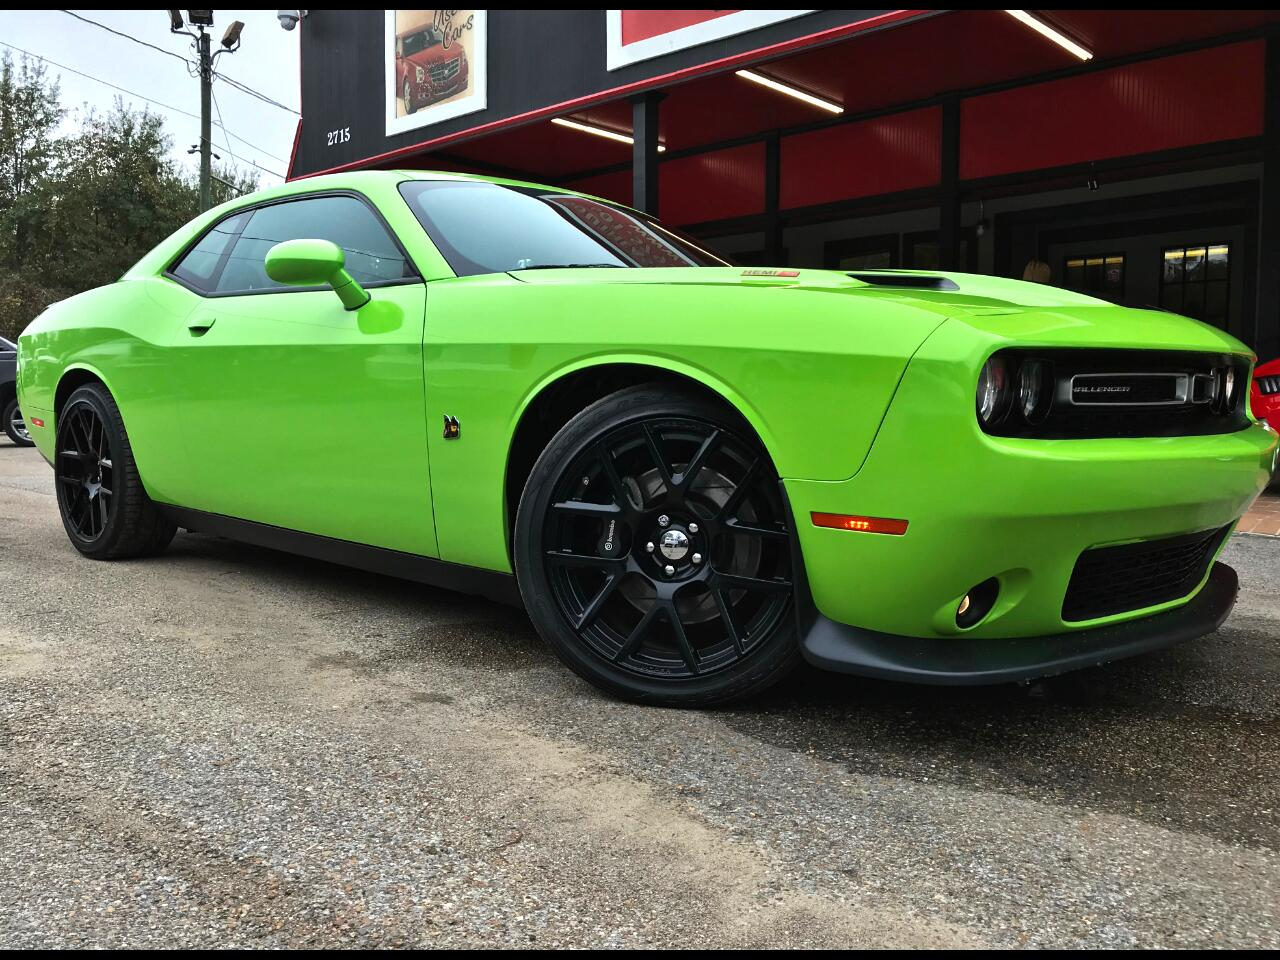 used 2015 dodge challenger scat pack for sale in hattiesburg ms 39402 southeastern auto brokers. Black Bedroom Furniture Sets. Home Design Ideas